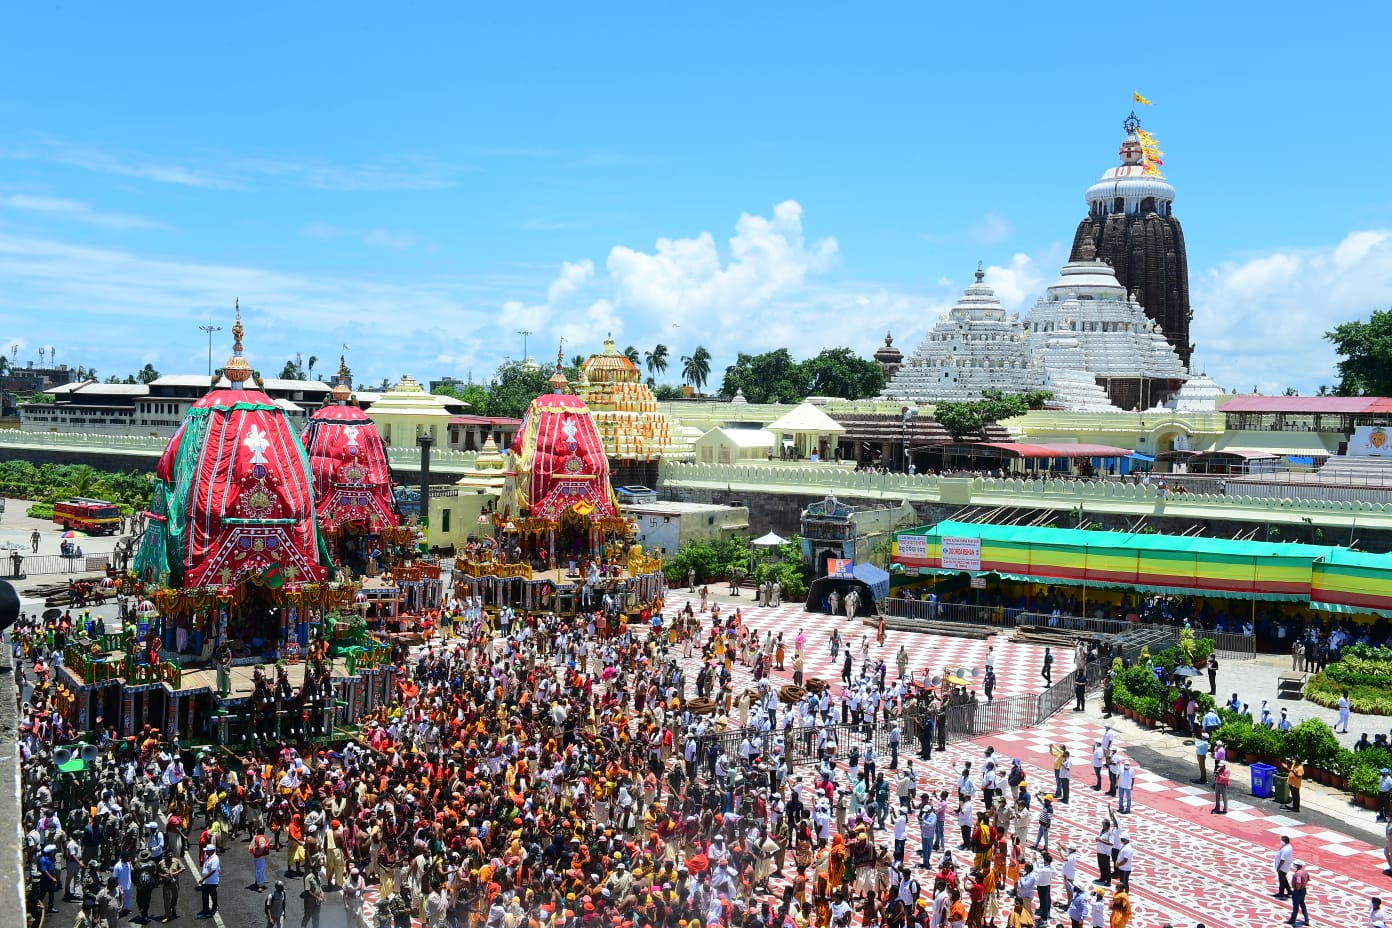 CM Naveen Patnaik Thanked All For Smooth Management Of Ratha Yatra